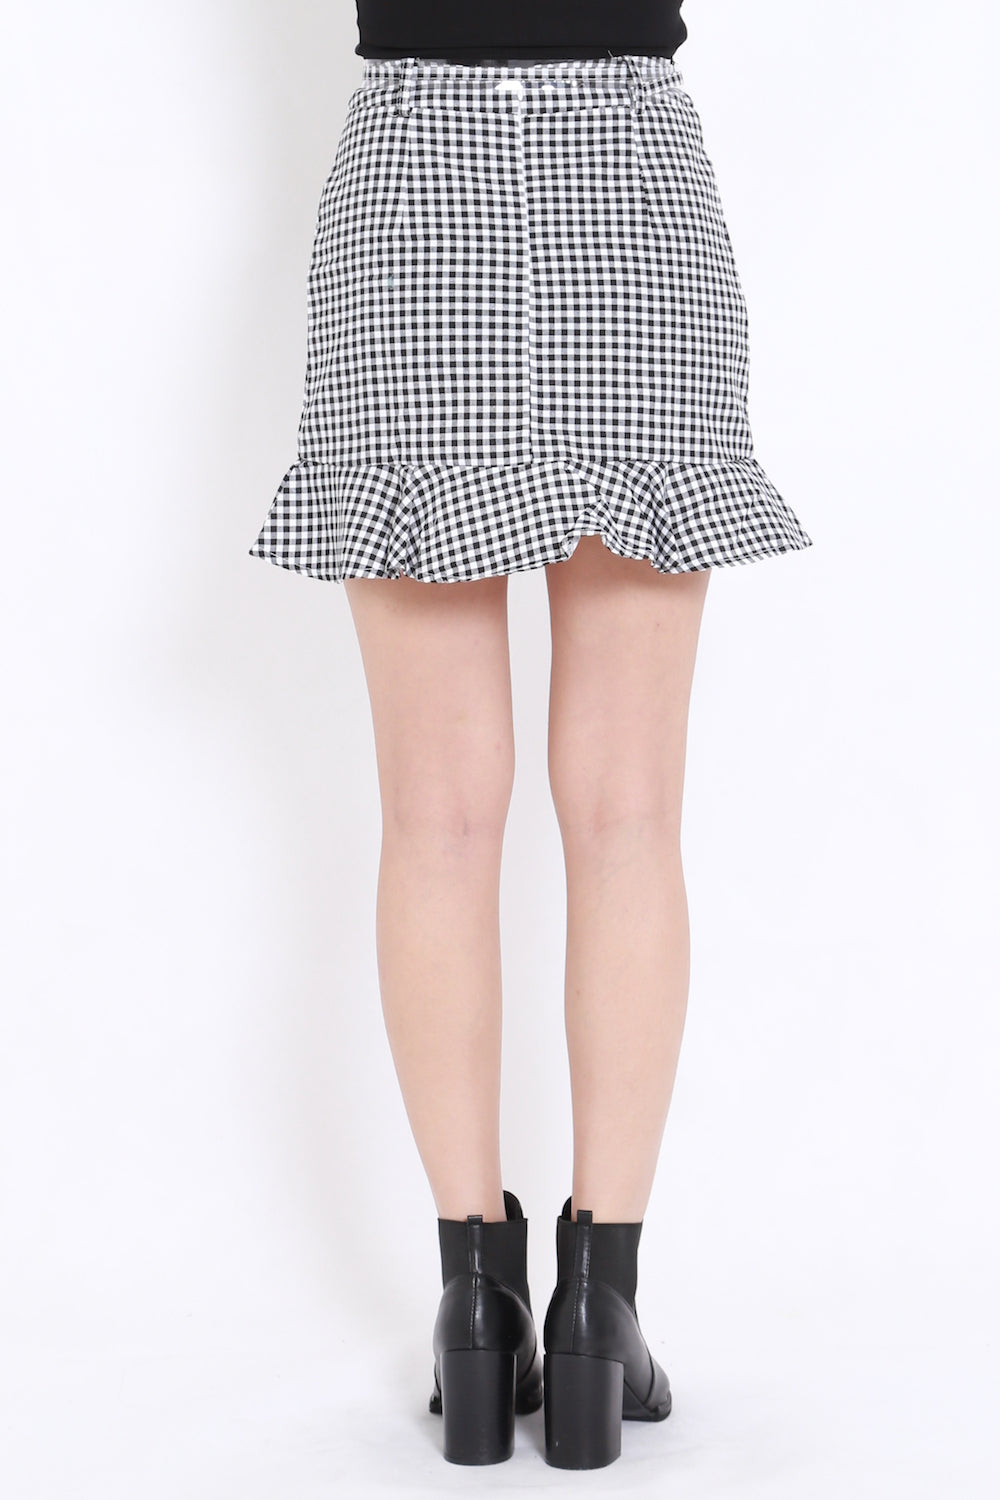 Gingham Mermaid Skirt (Black)